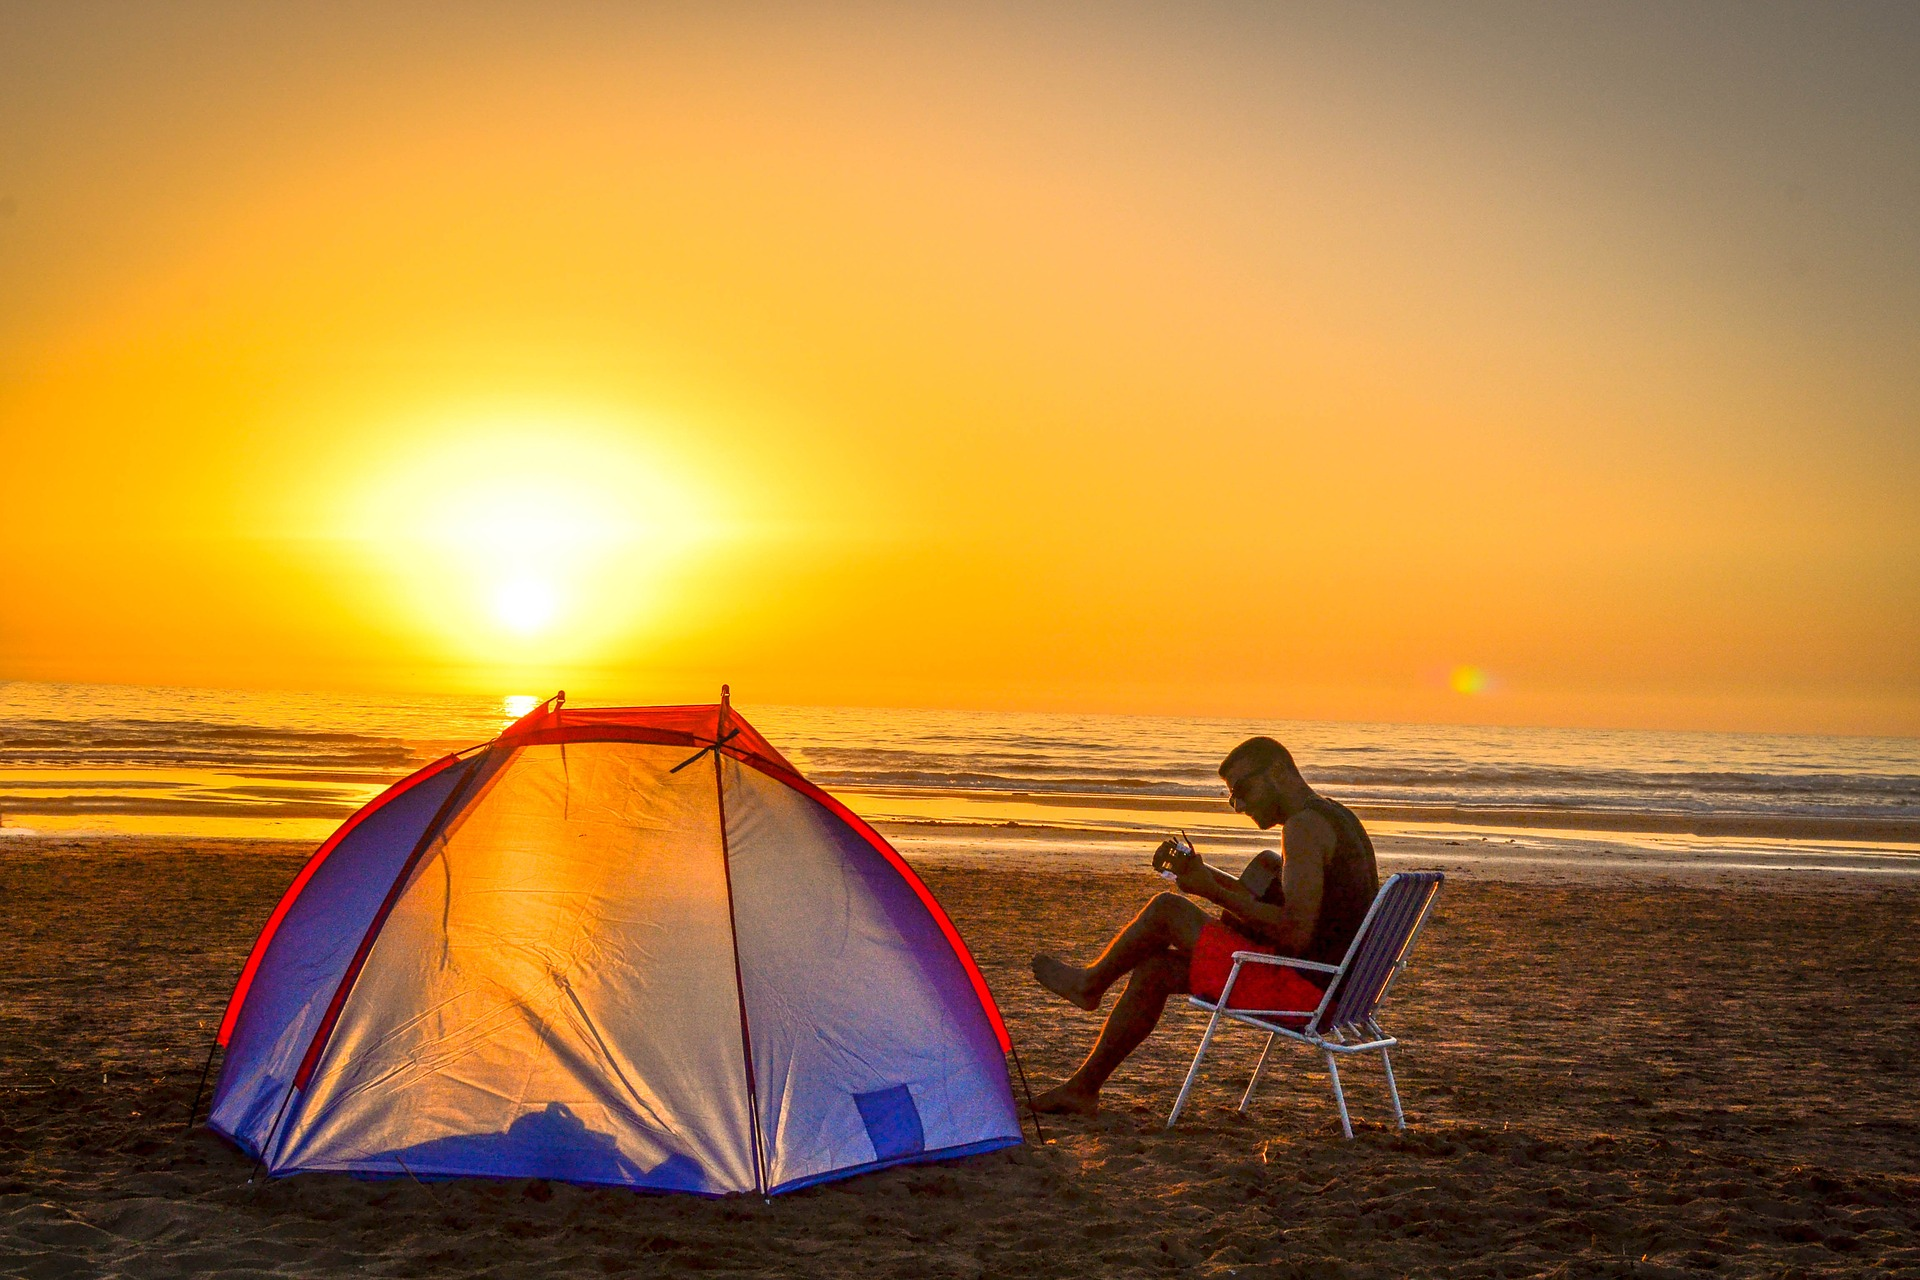 Join the Great American Campout this weekend by camping in the great outdoors. Whether it's in your own back yard or at a state park, sleeping under the stars has many benefits.